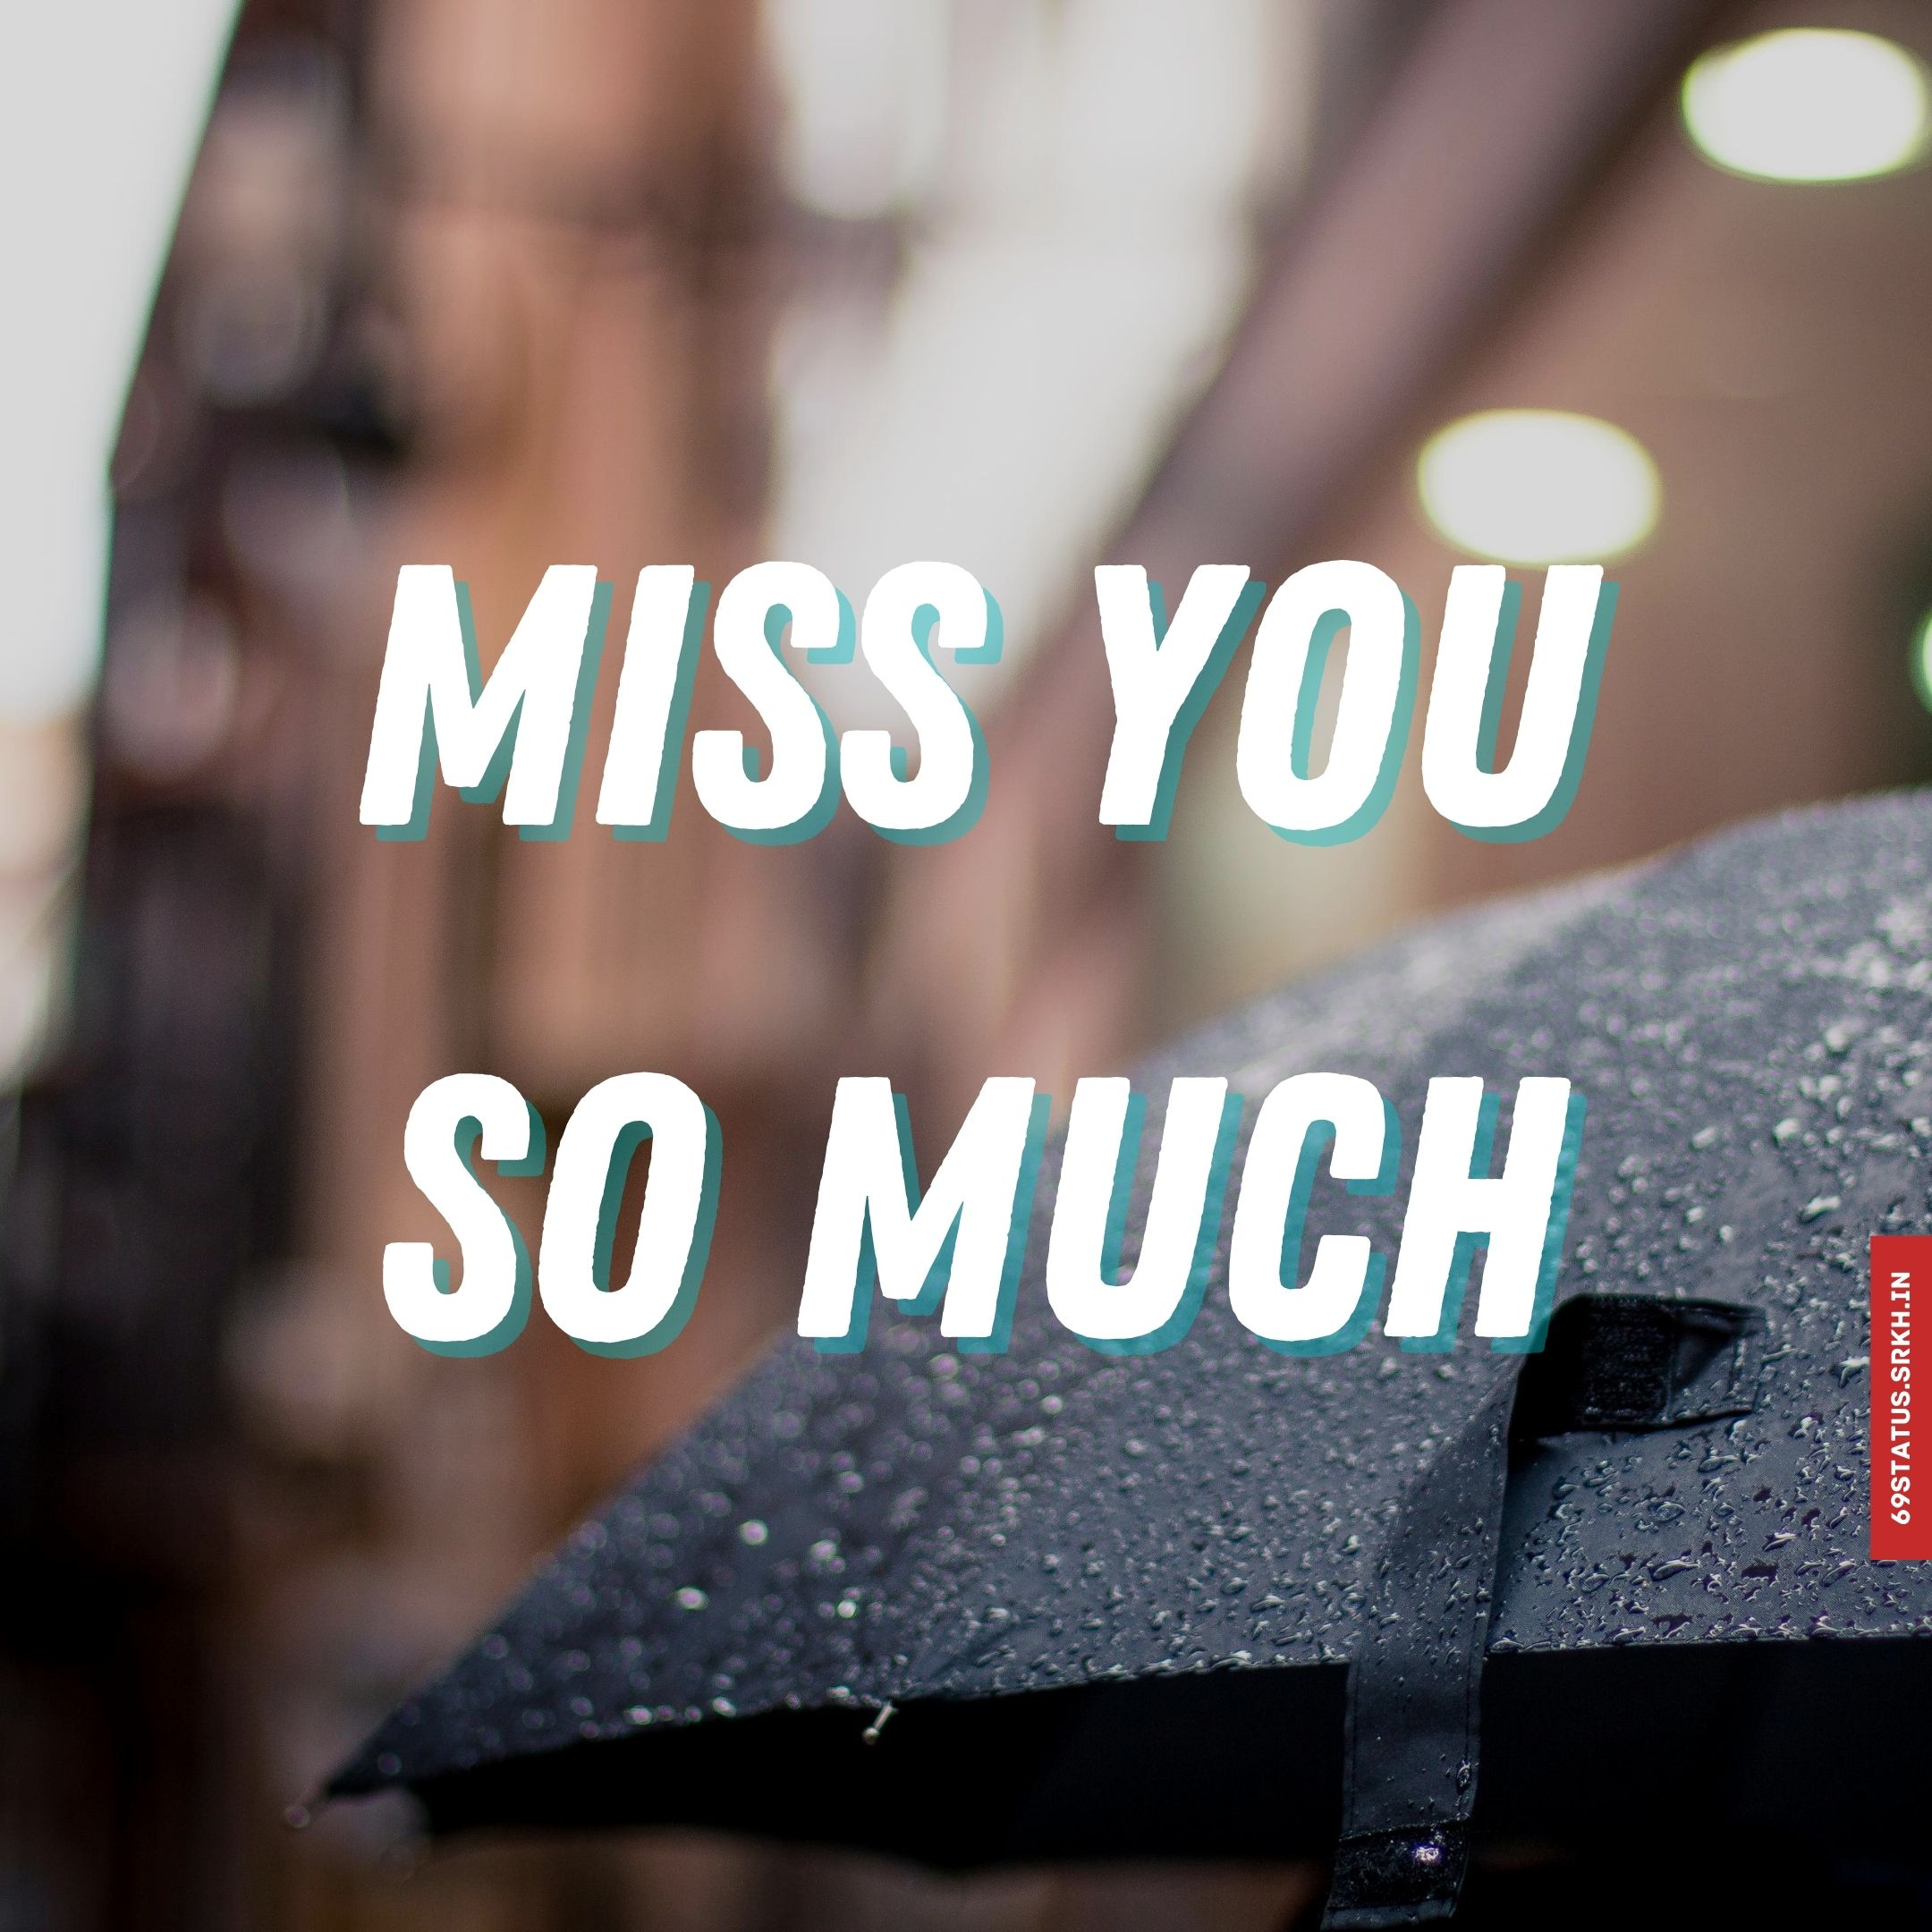 Miss you so much images full HD free download.